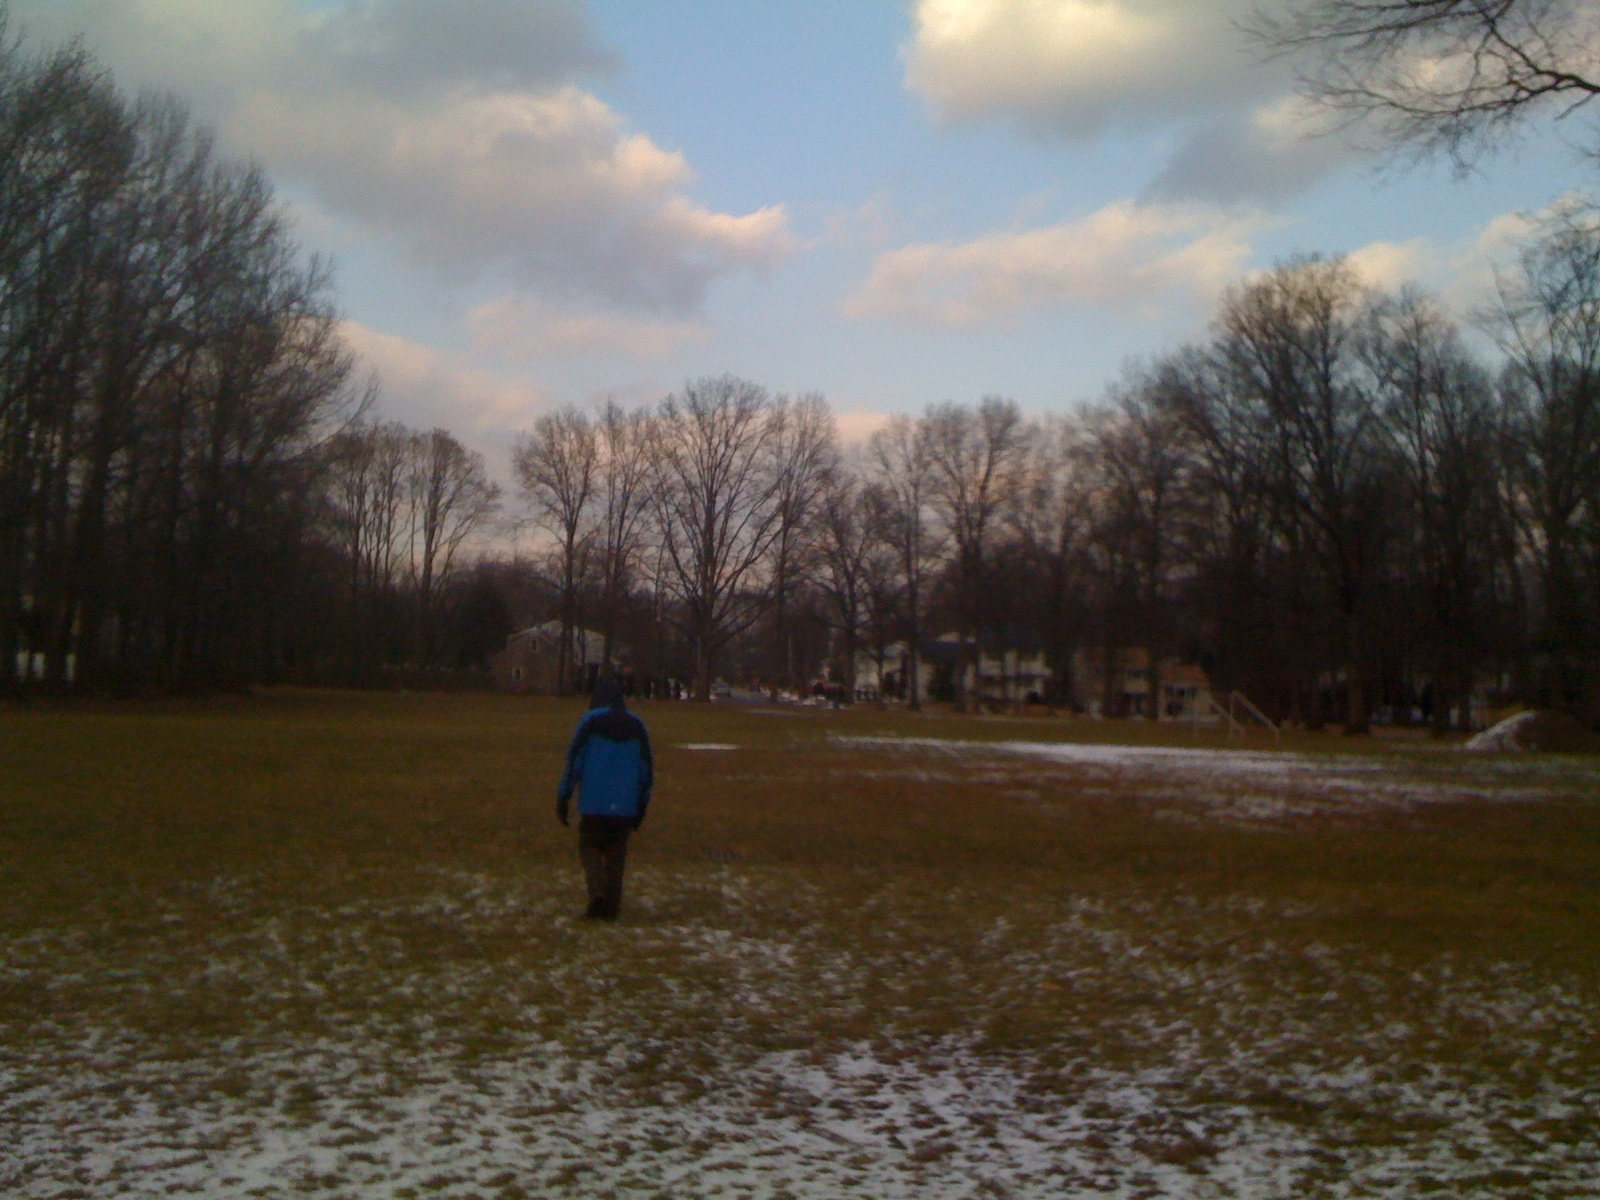 Charlie walking across a field on a somewhat snowy/sunny day